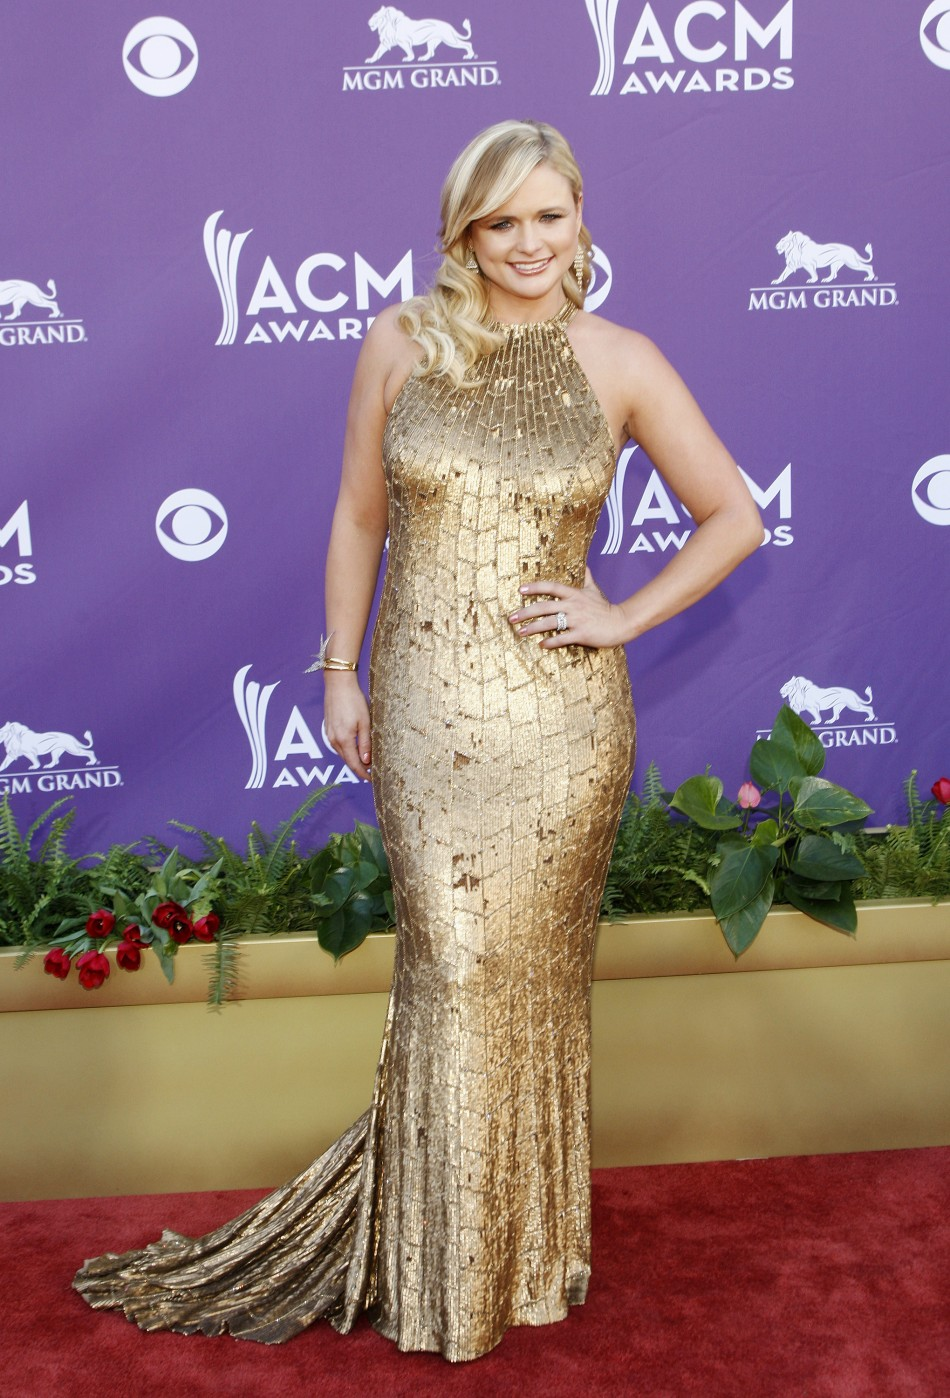 Singer Miranda Lambert was voted ninth most beautiful woman of 2012 by People magazine